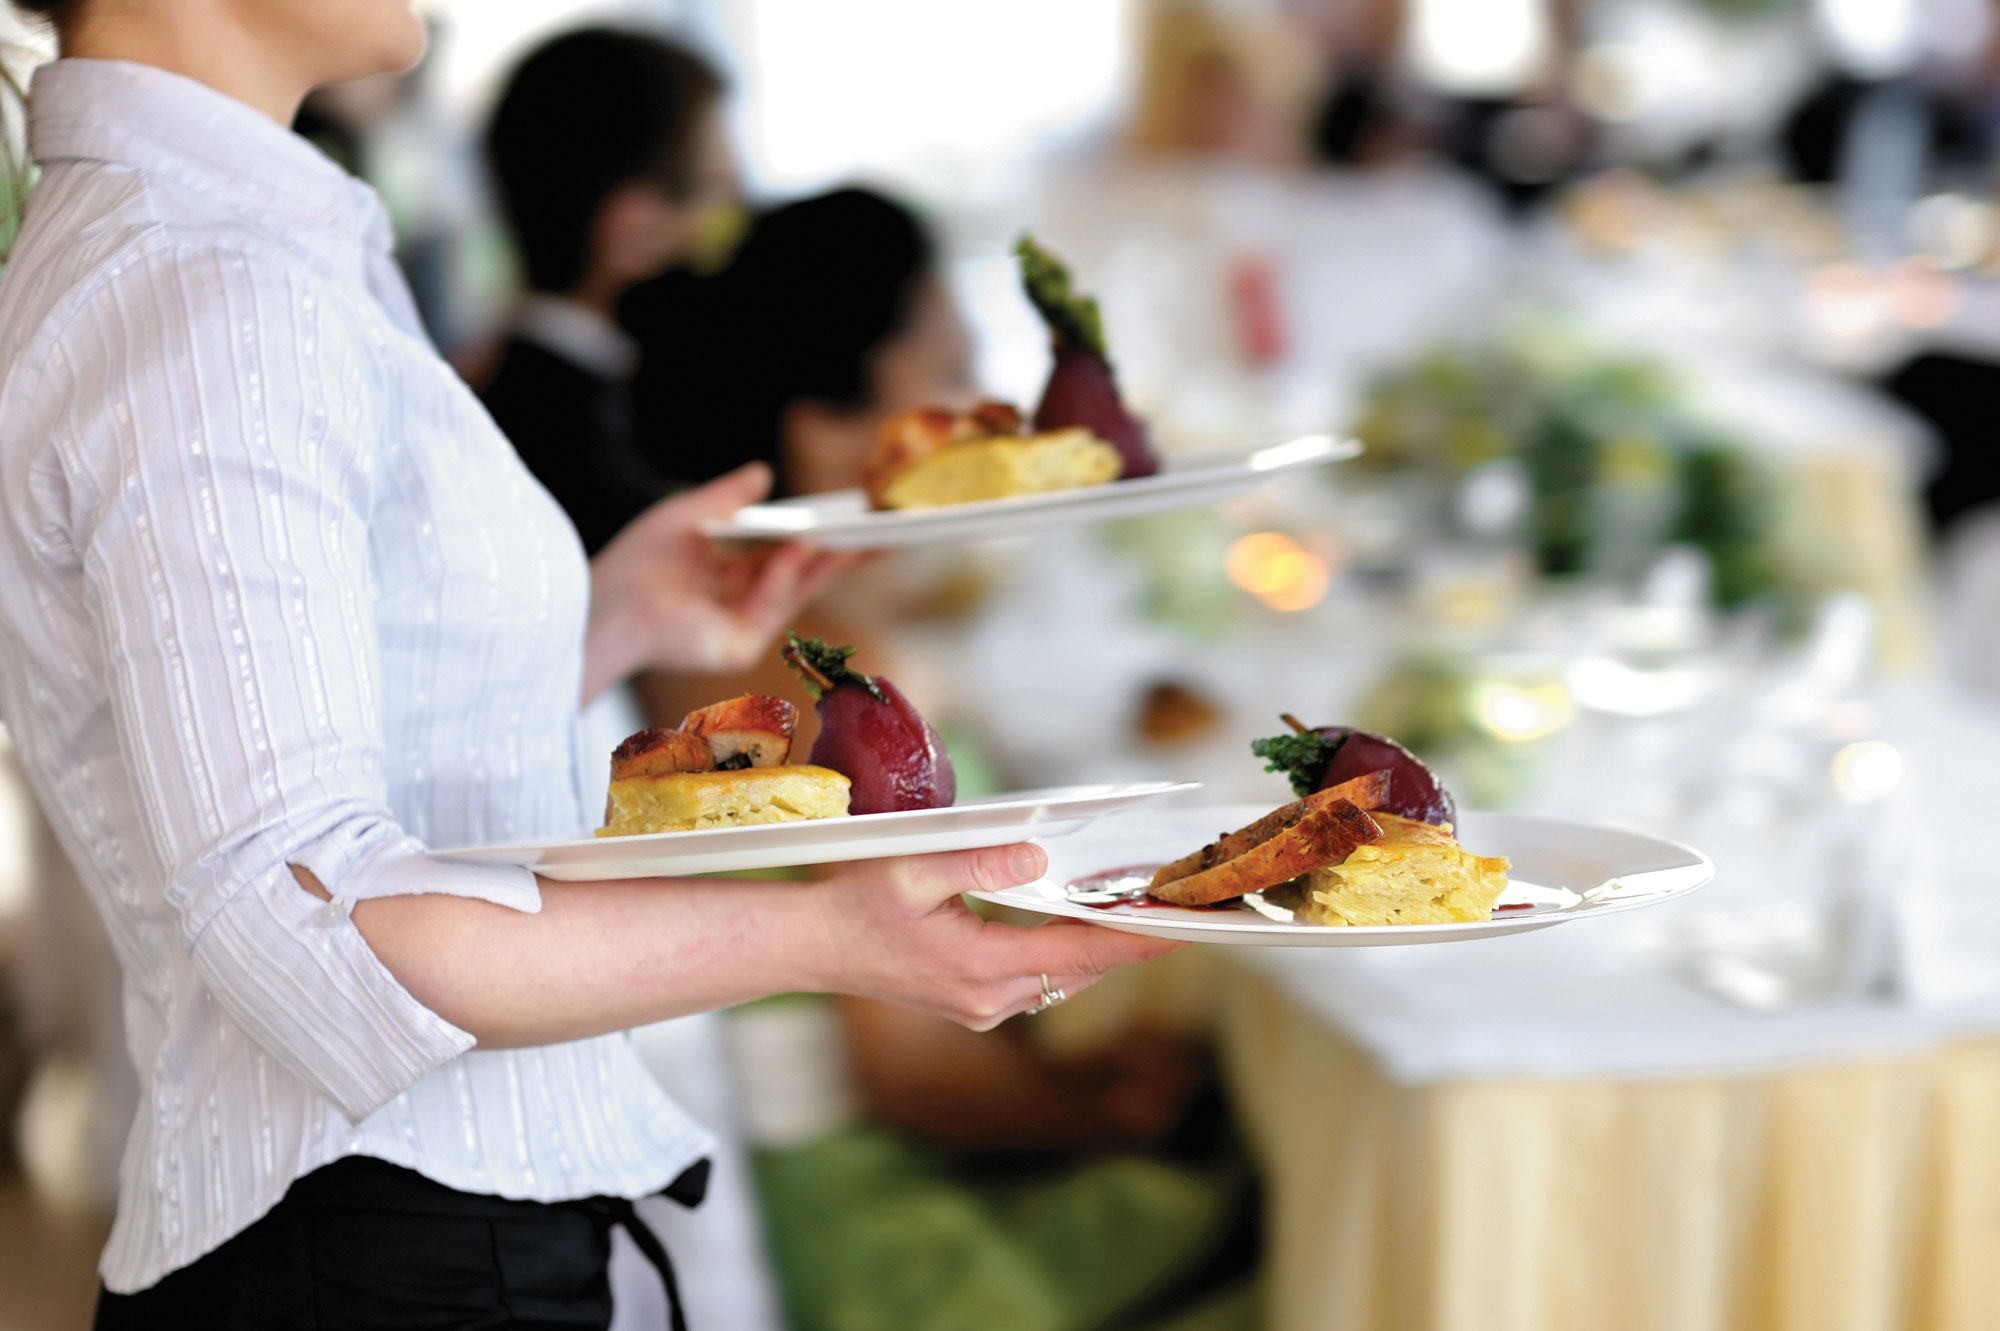 Photo of a waiter in a white shirt carrying three plates of food.